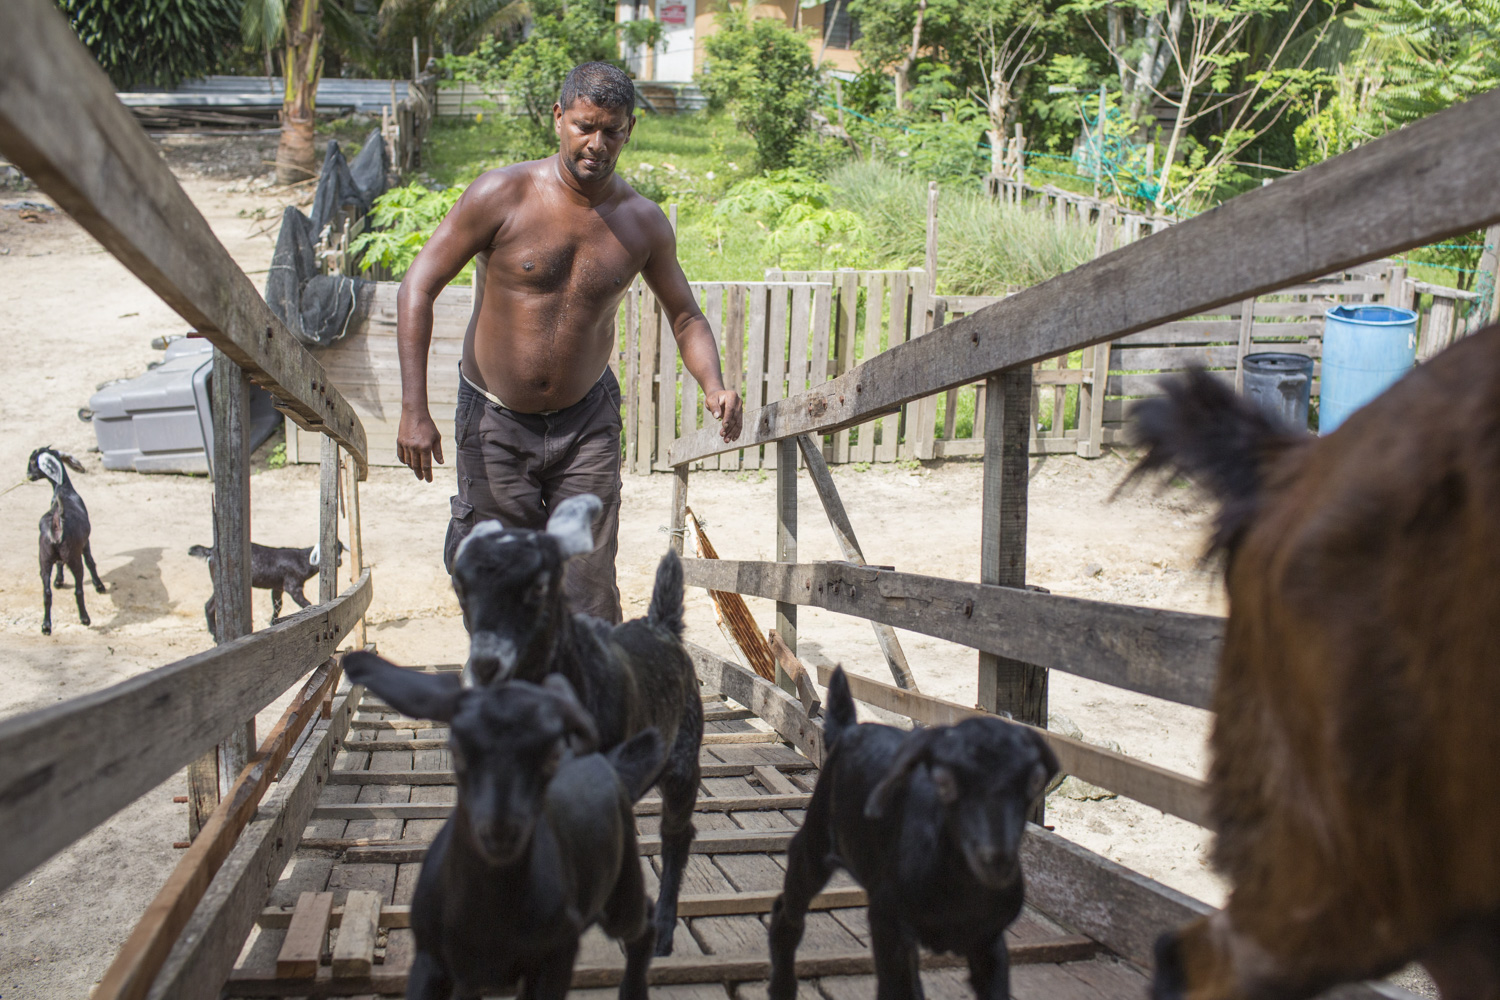 After his stint at Positive Living, Selva hopes to set up his own farm in the long run. He developed a keen passion for rearing goats after caring for the ones at PLC.